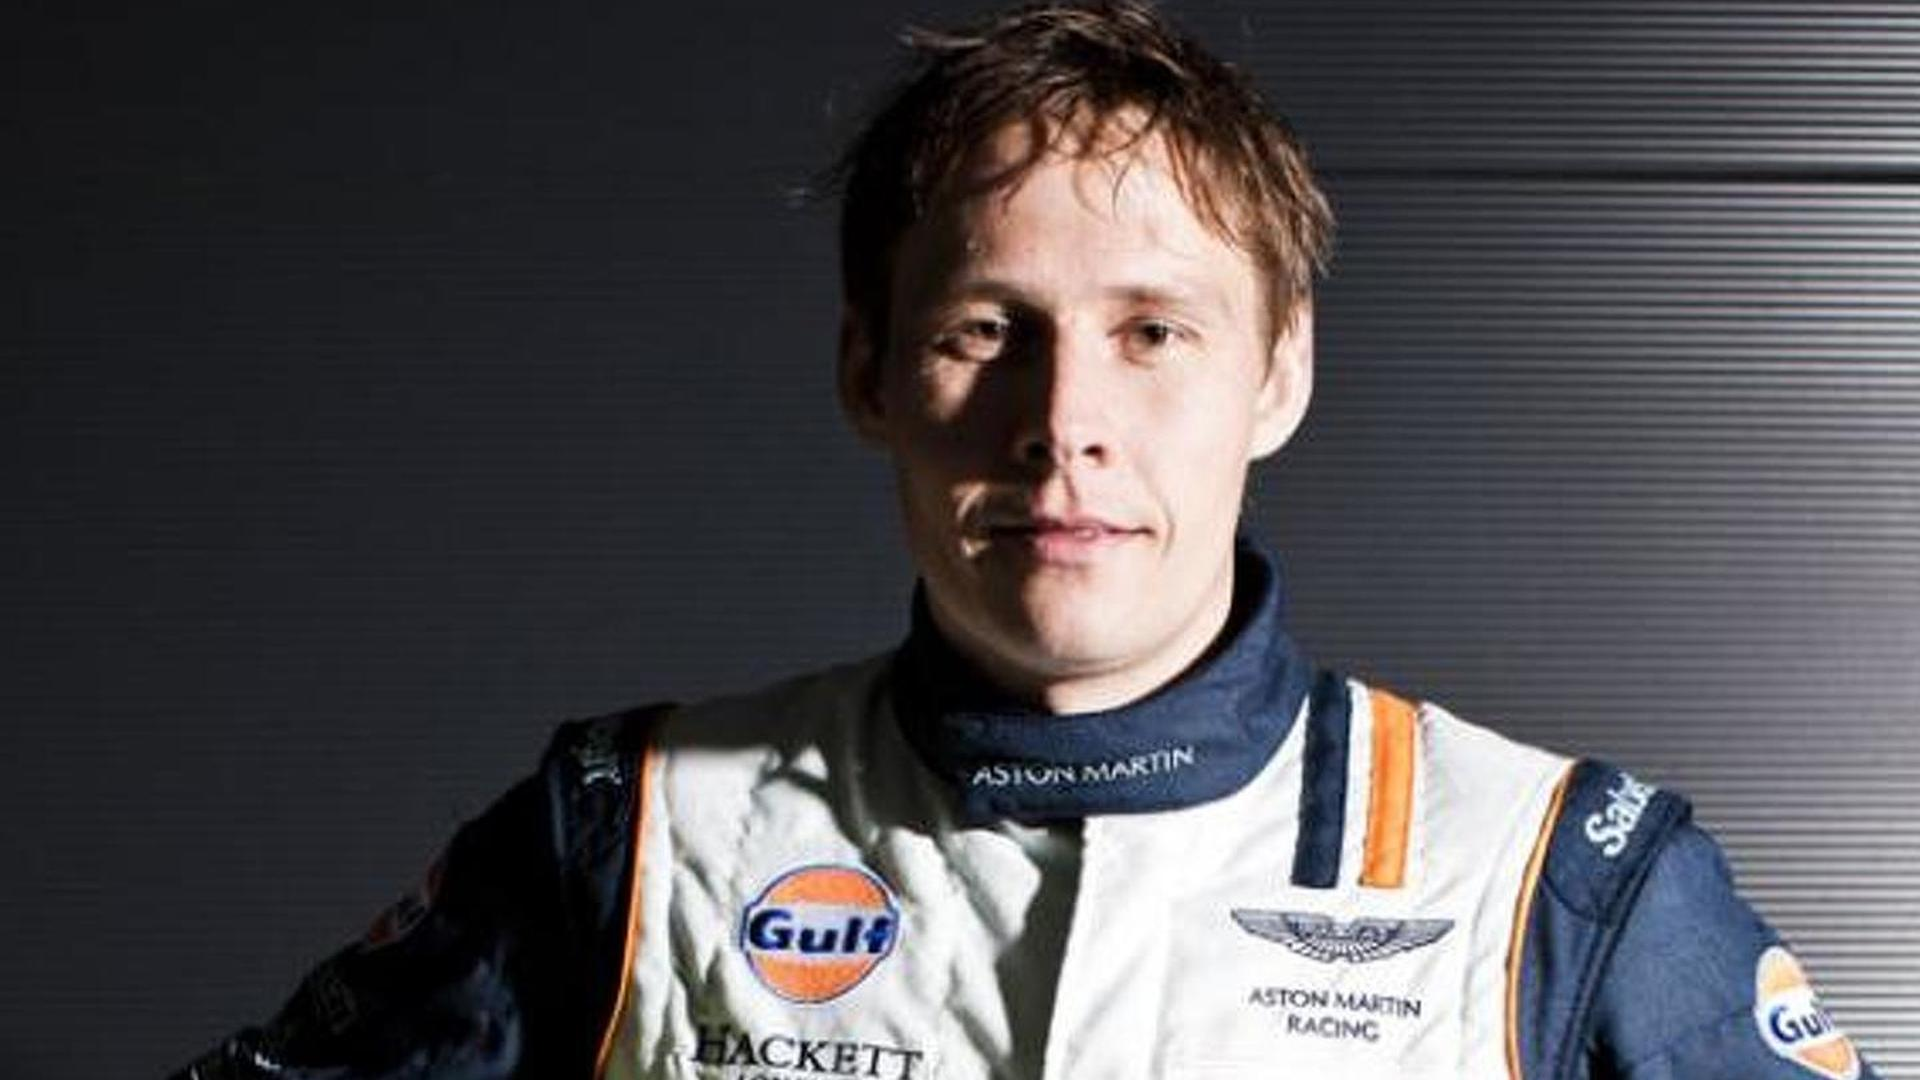 Aston Martin Racing driver Allan Simonsen killed at Le Mans